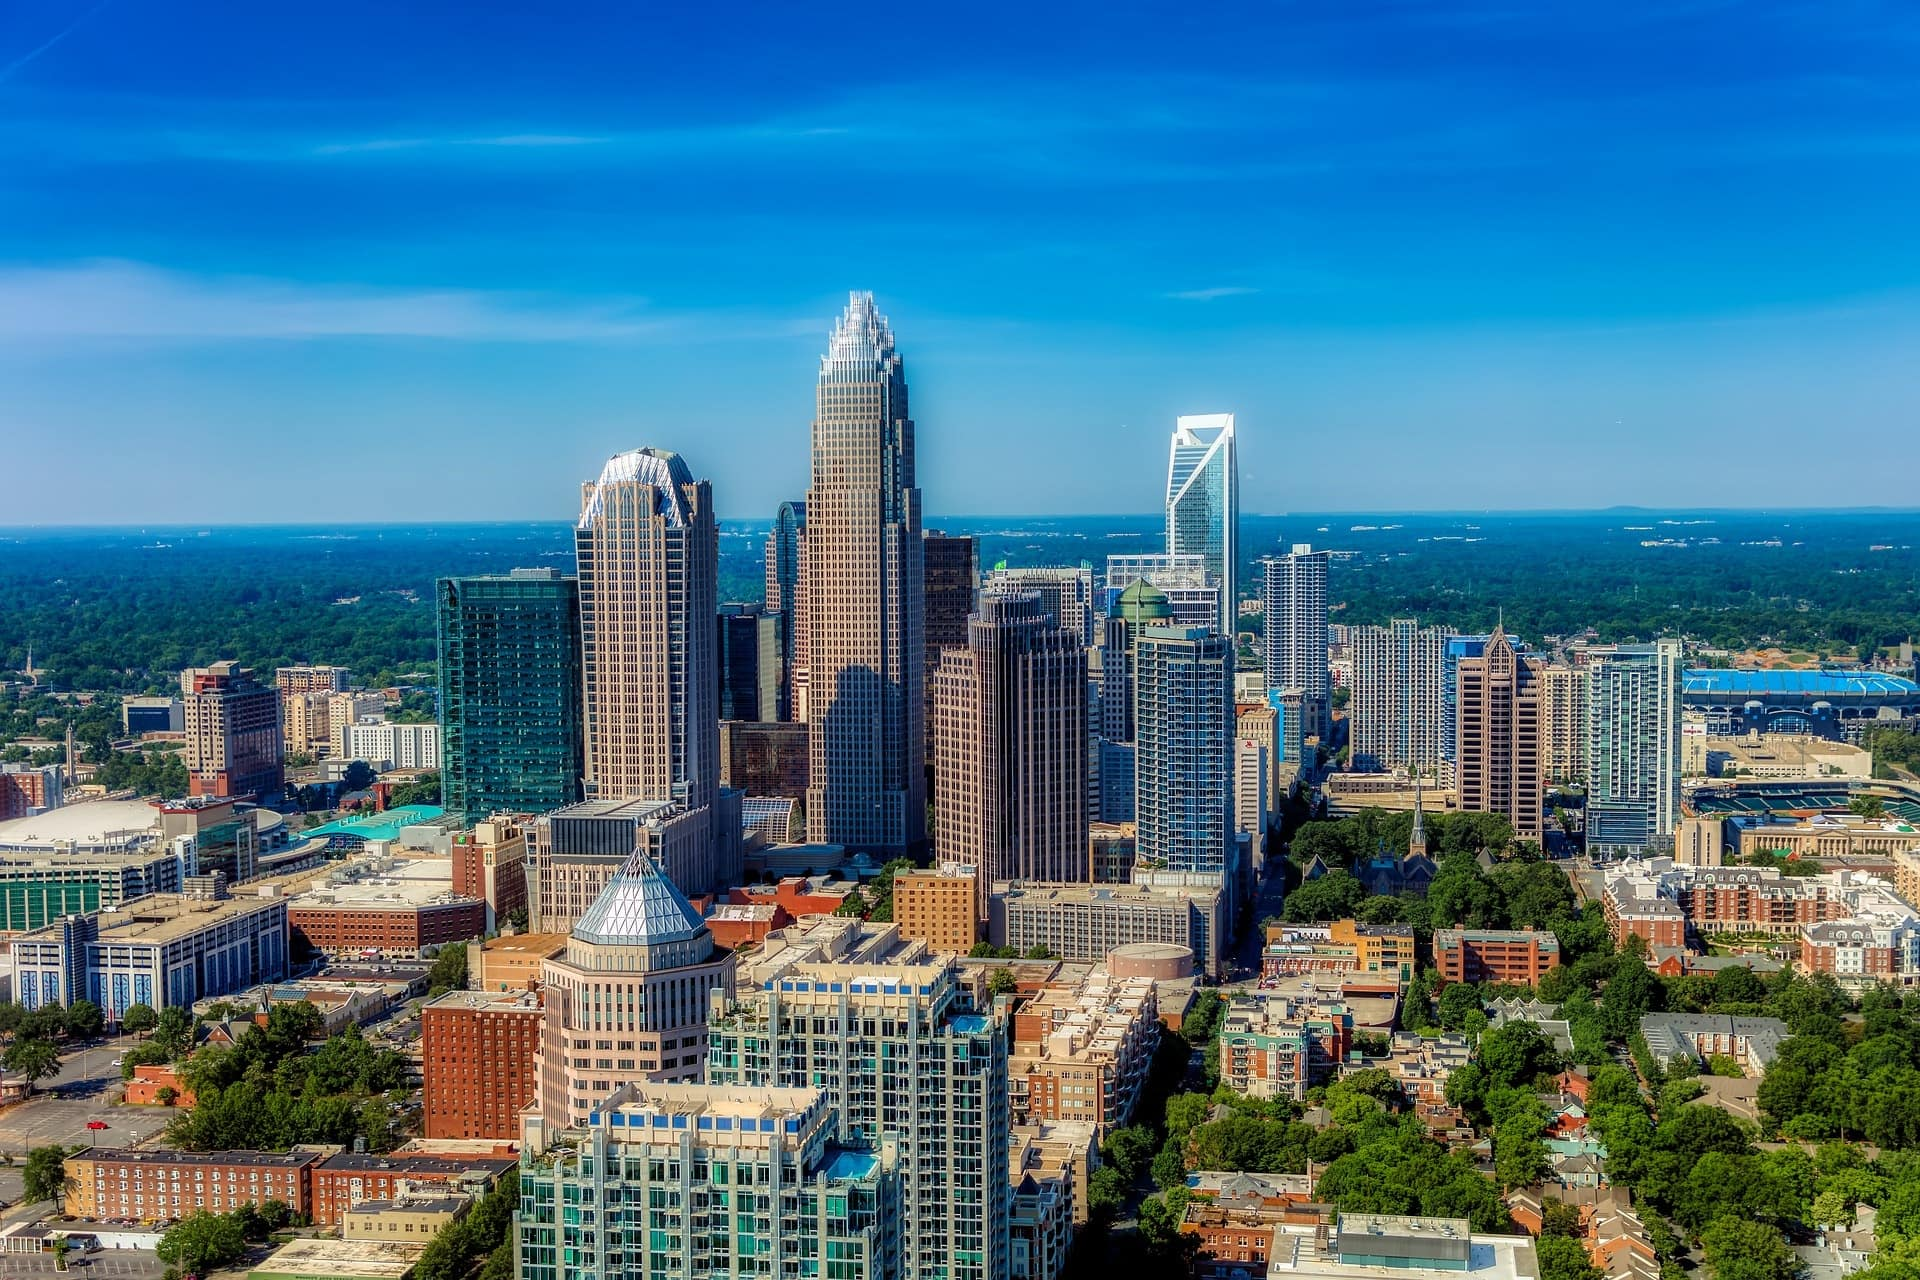 An aerial view of the city of charlotte